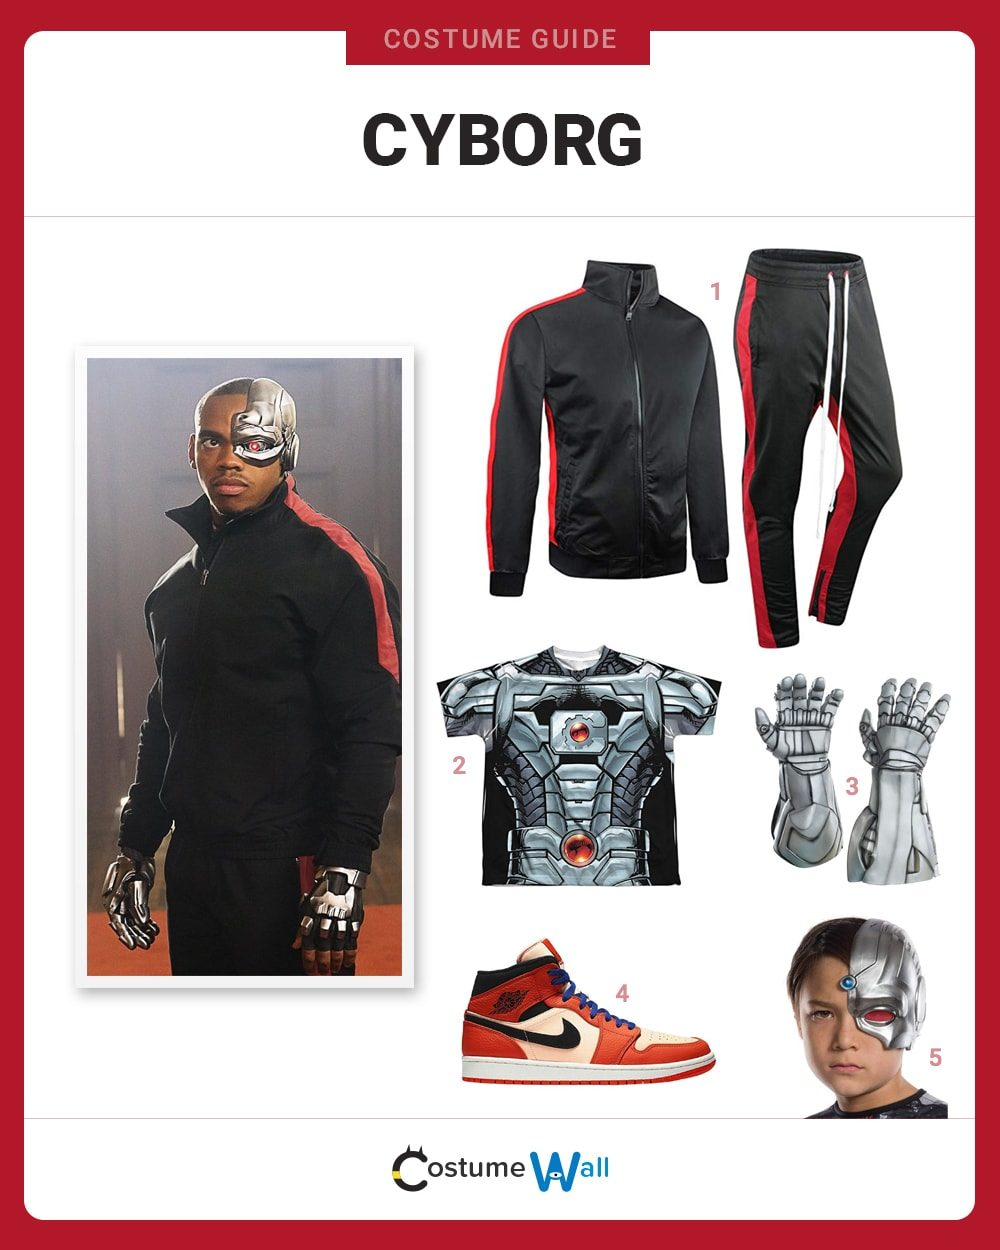 Cyborg Costume Guide